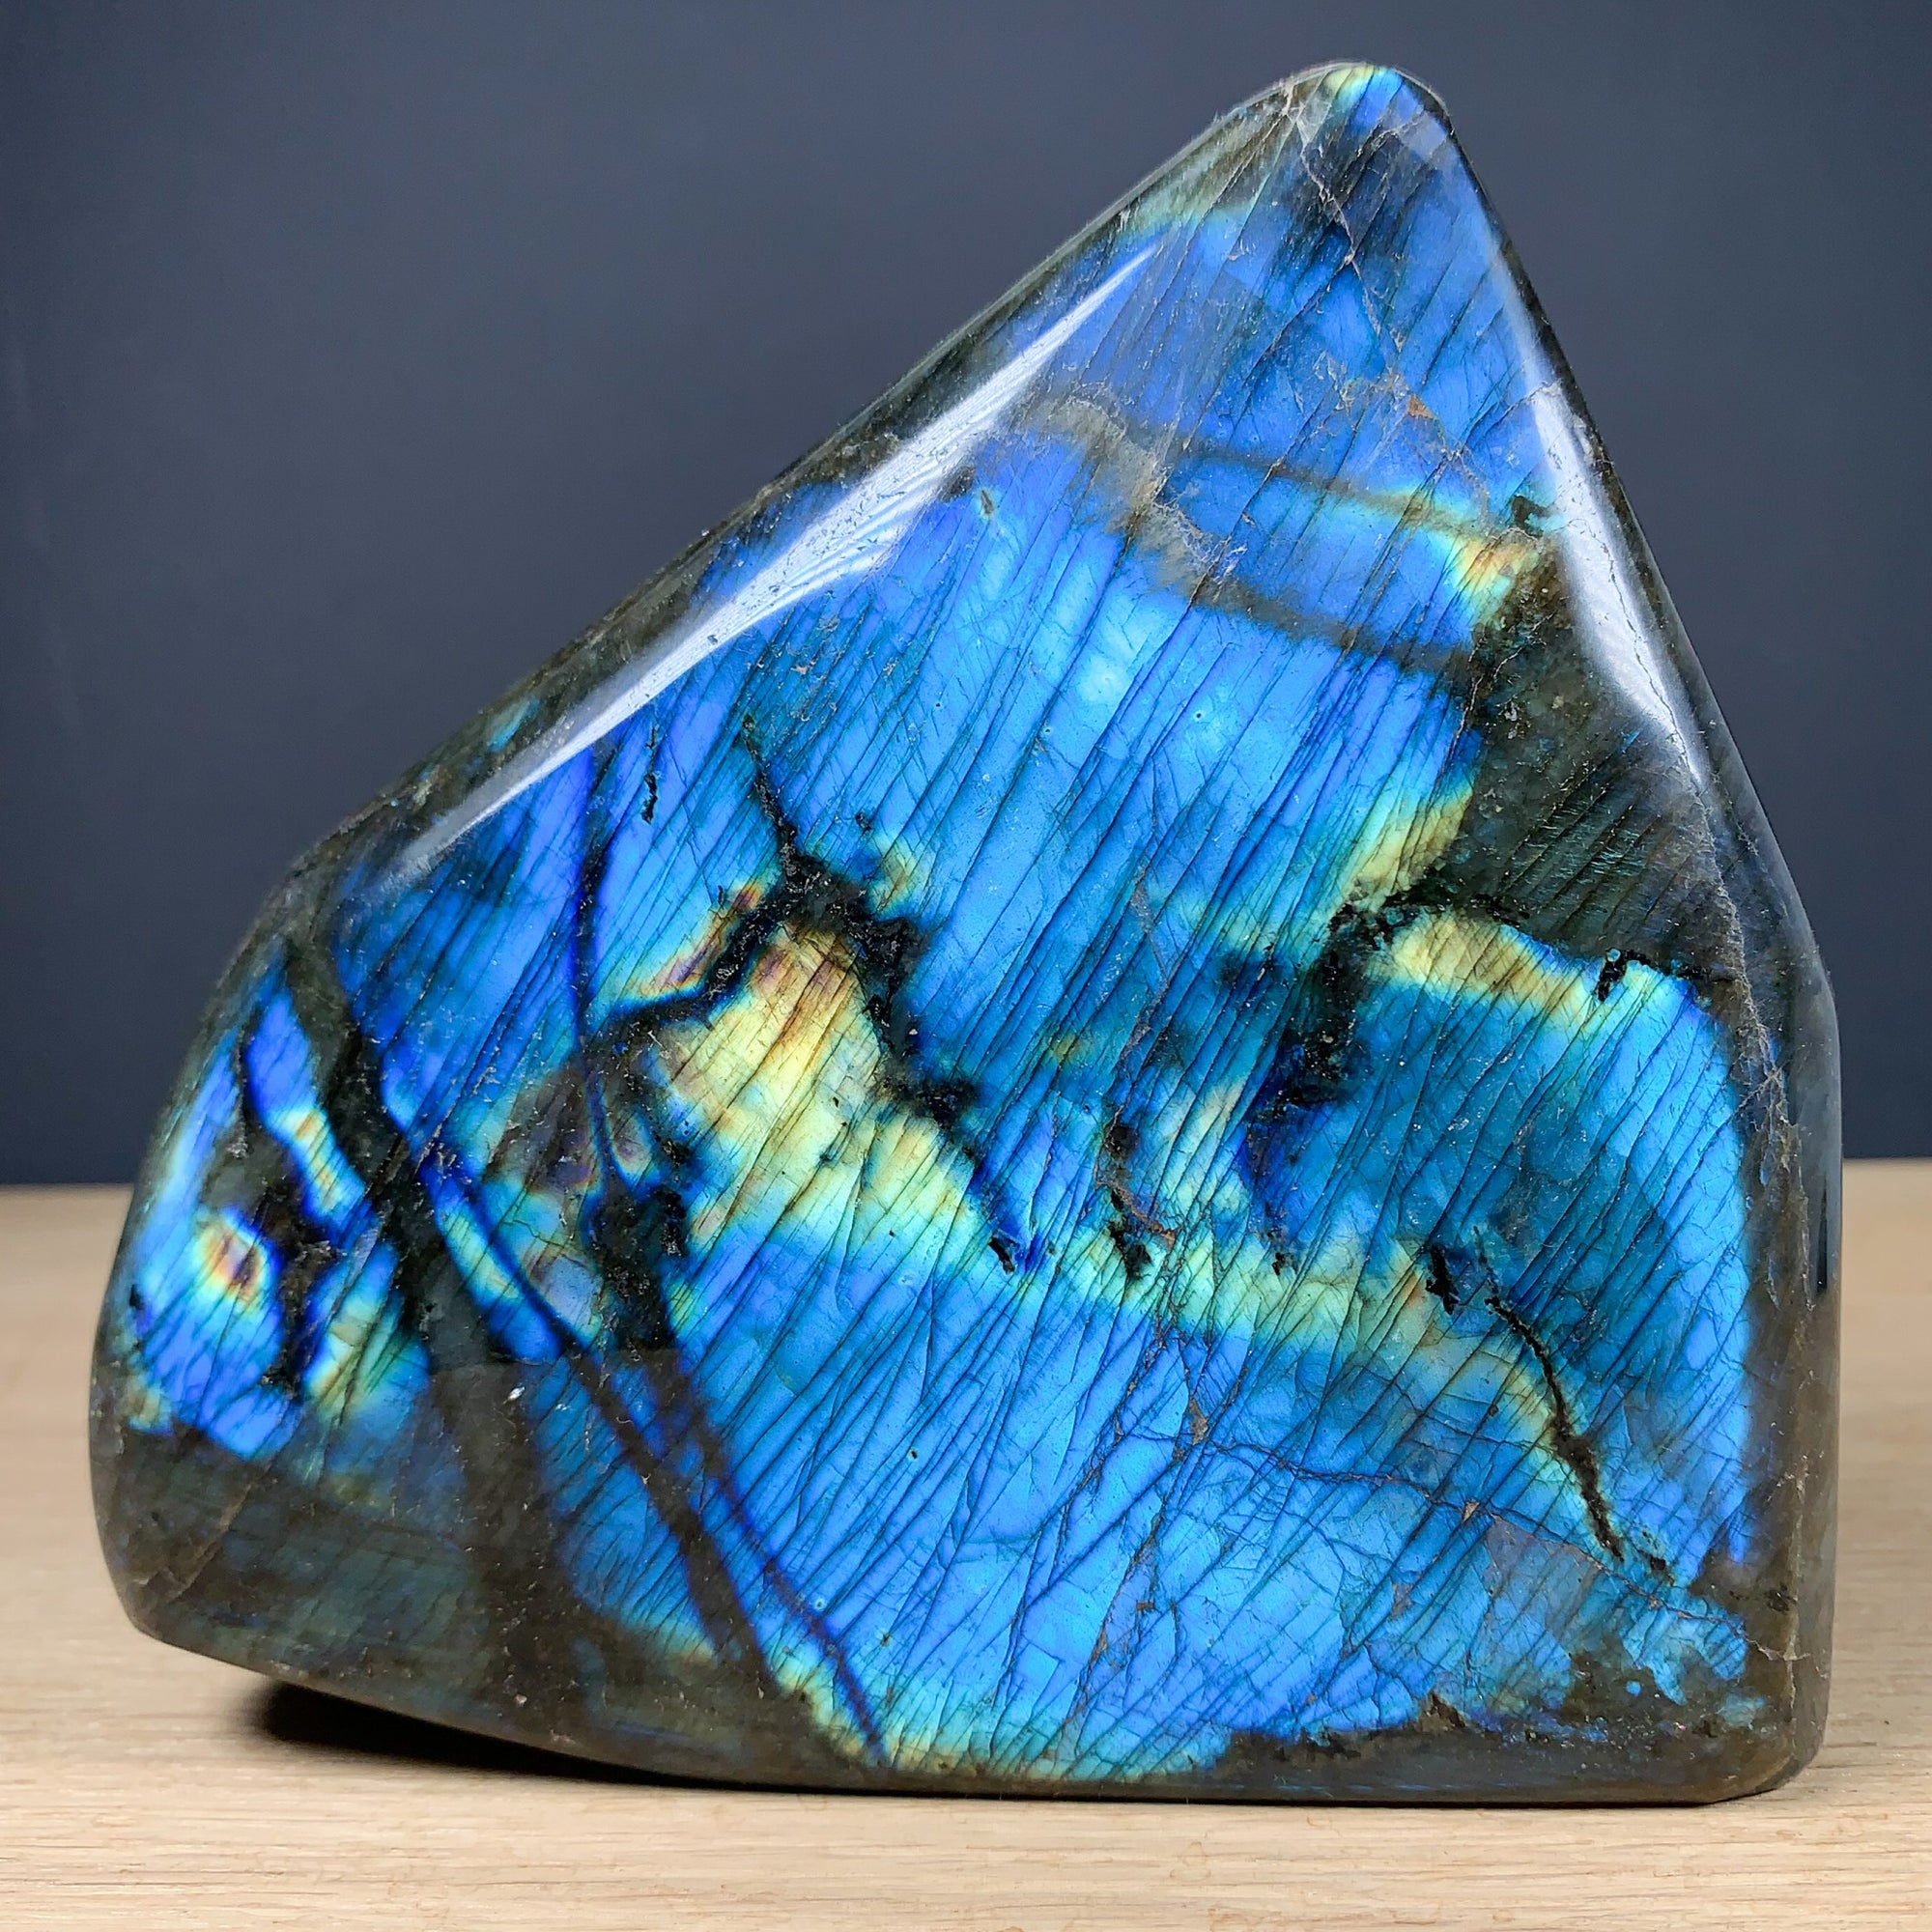 Labradorite Mineral Specimen (blue and gold) from Madagascar